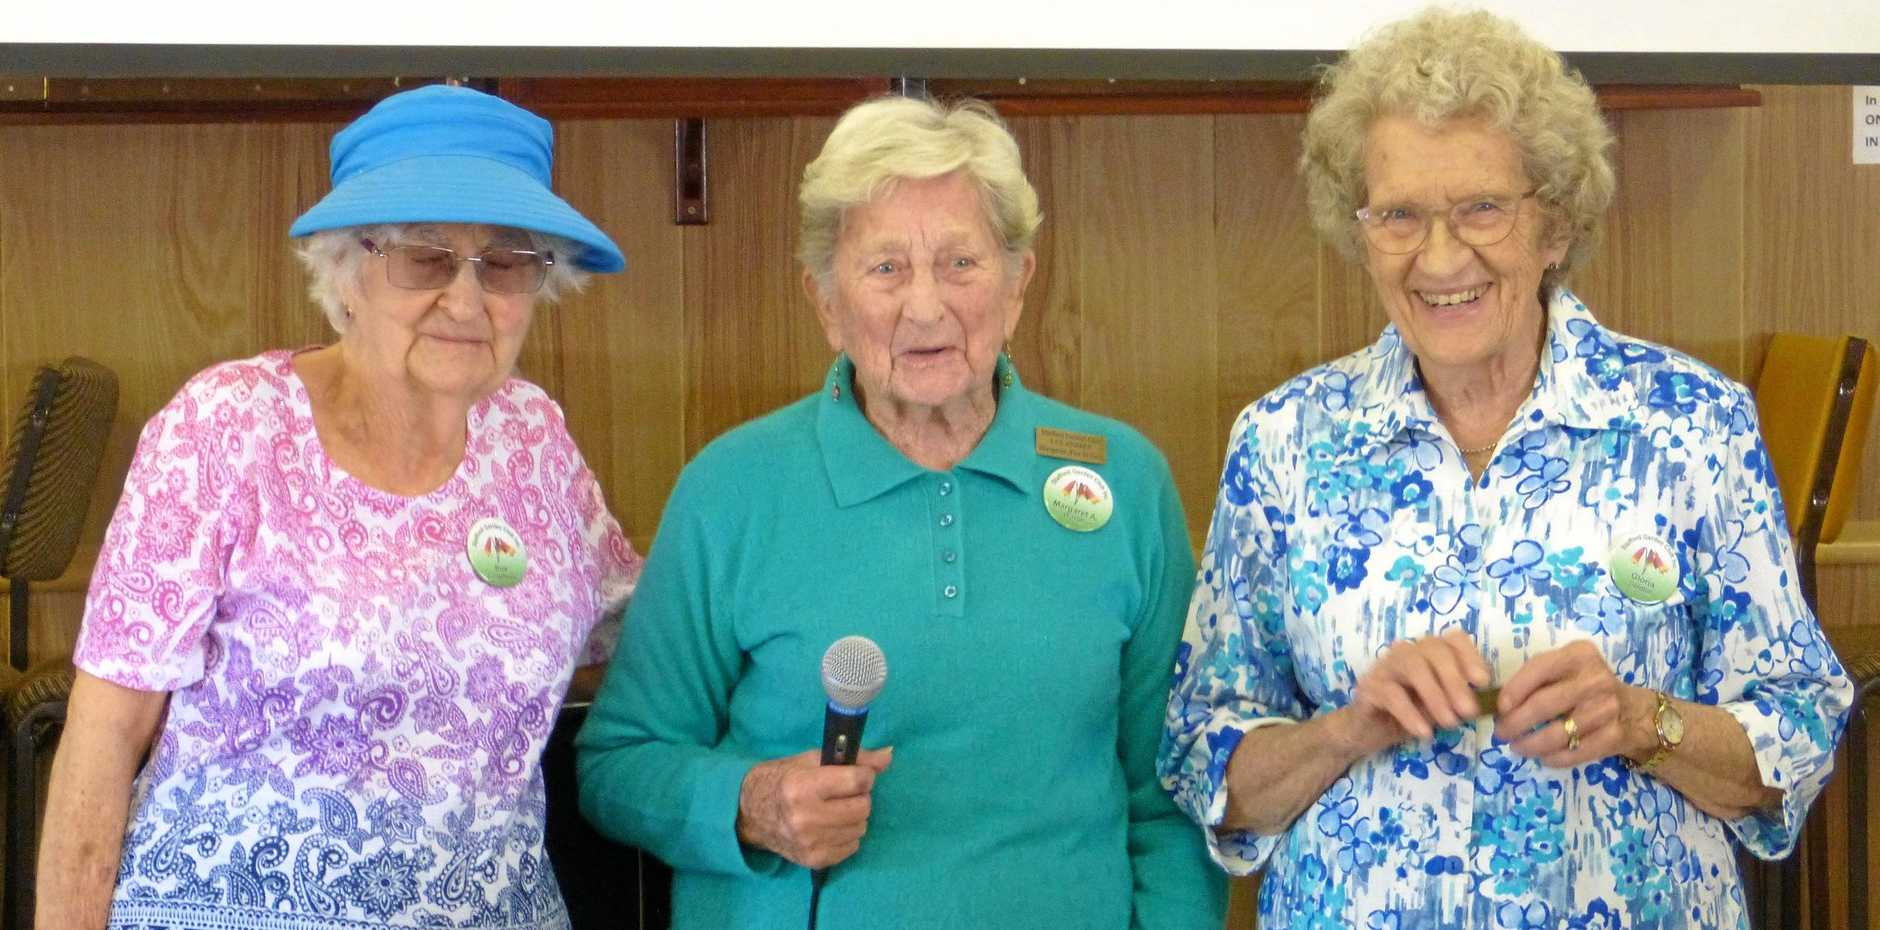 EXCLUSIVE CLUB: Sue Colquhoun, Margaret Anne Wilson and Gloria Gledhill are all Life Members of the Stafford Garden Club.